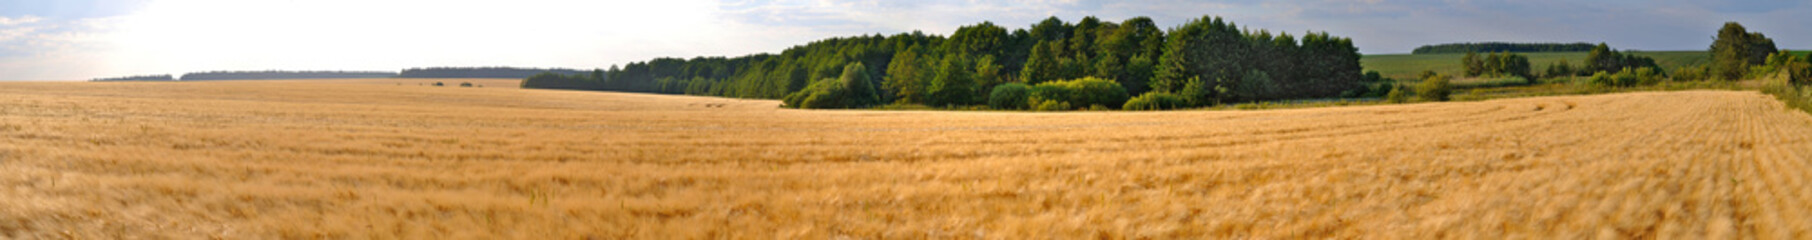 Photo sur Aluminium Sauvage wheat field panorama